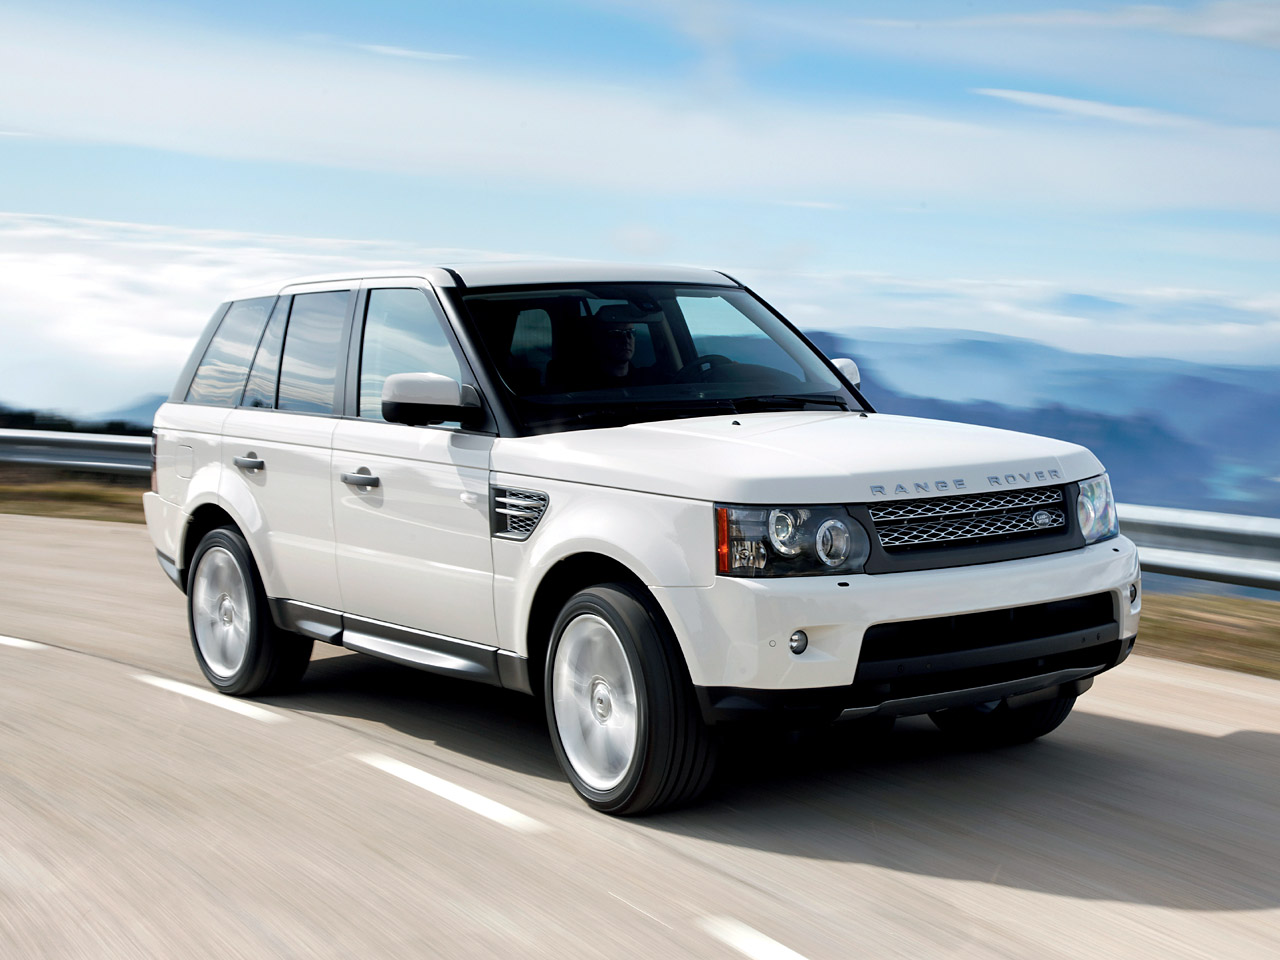 land rover range rover images #10